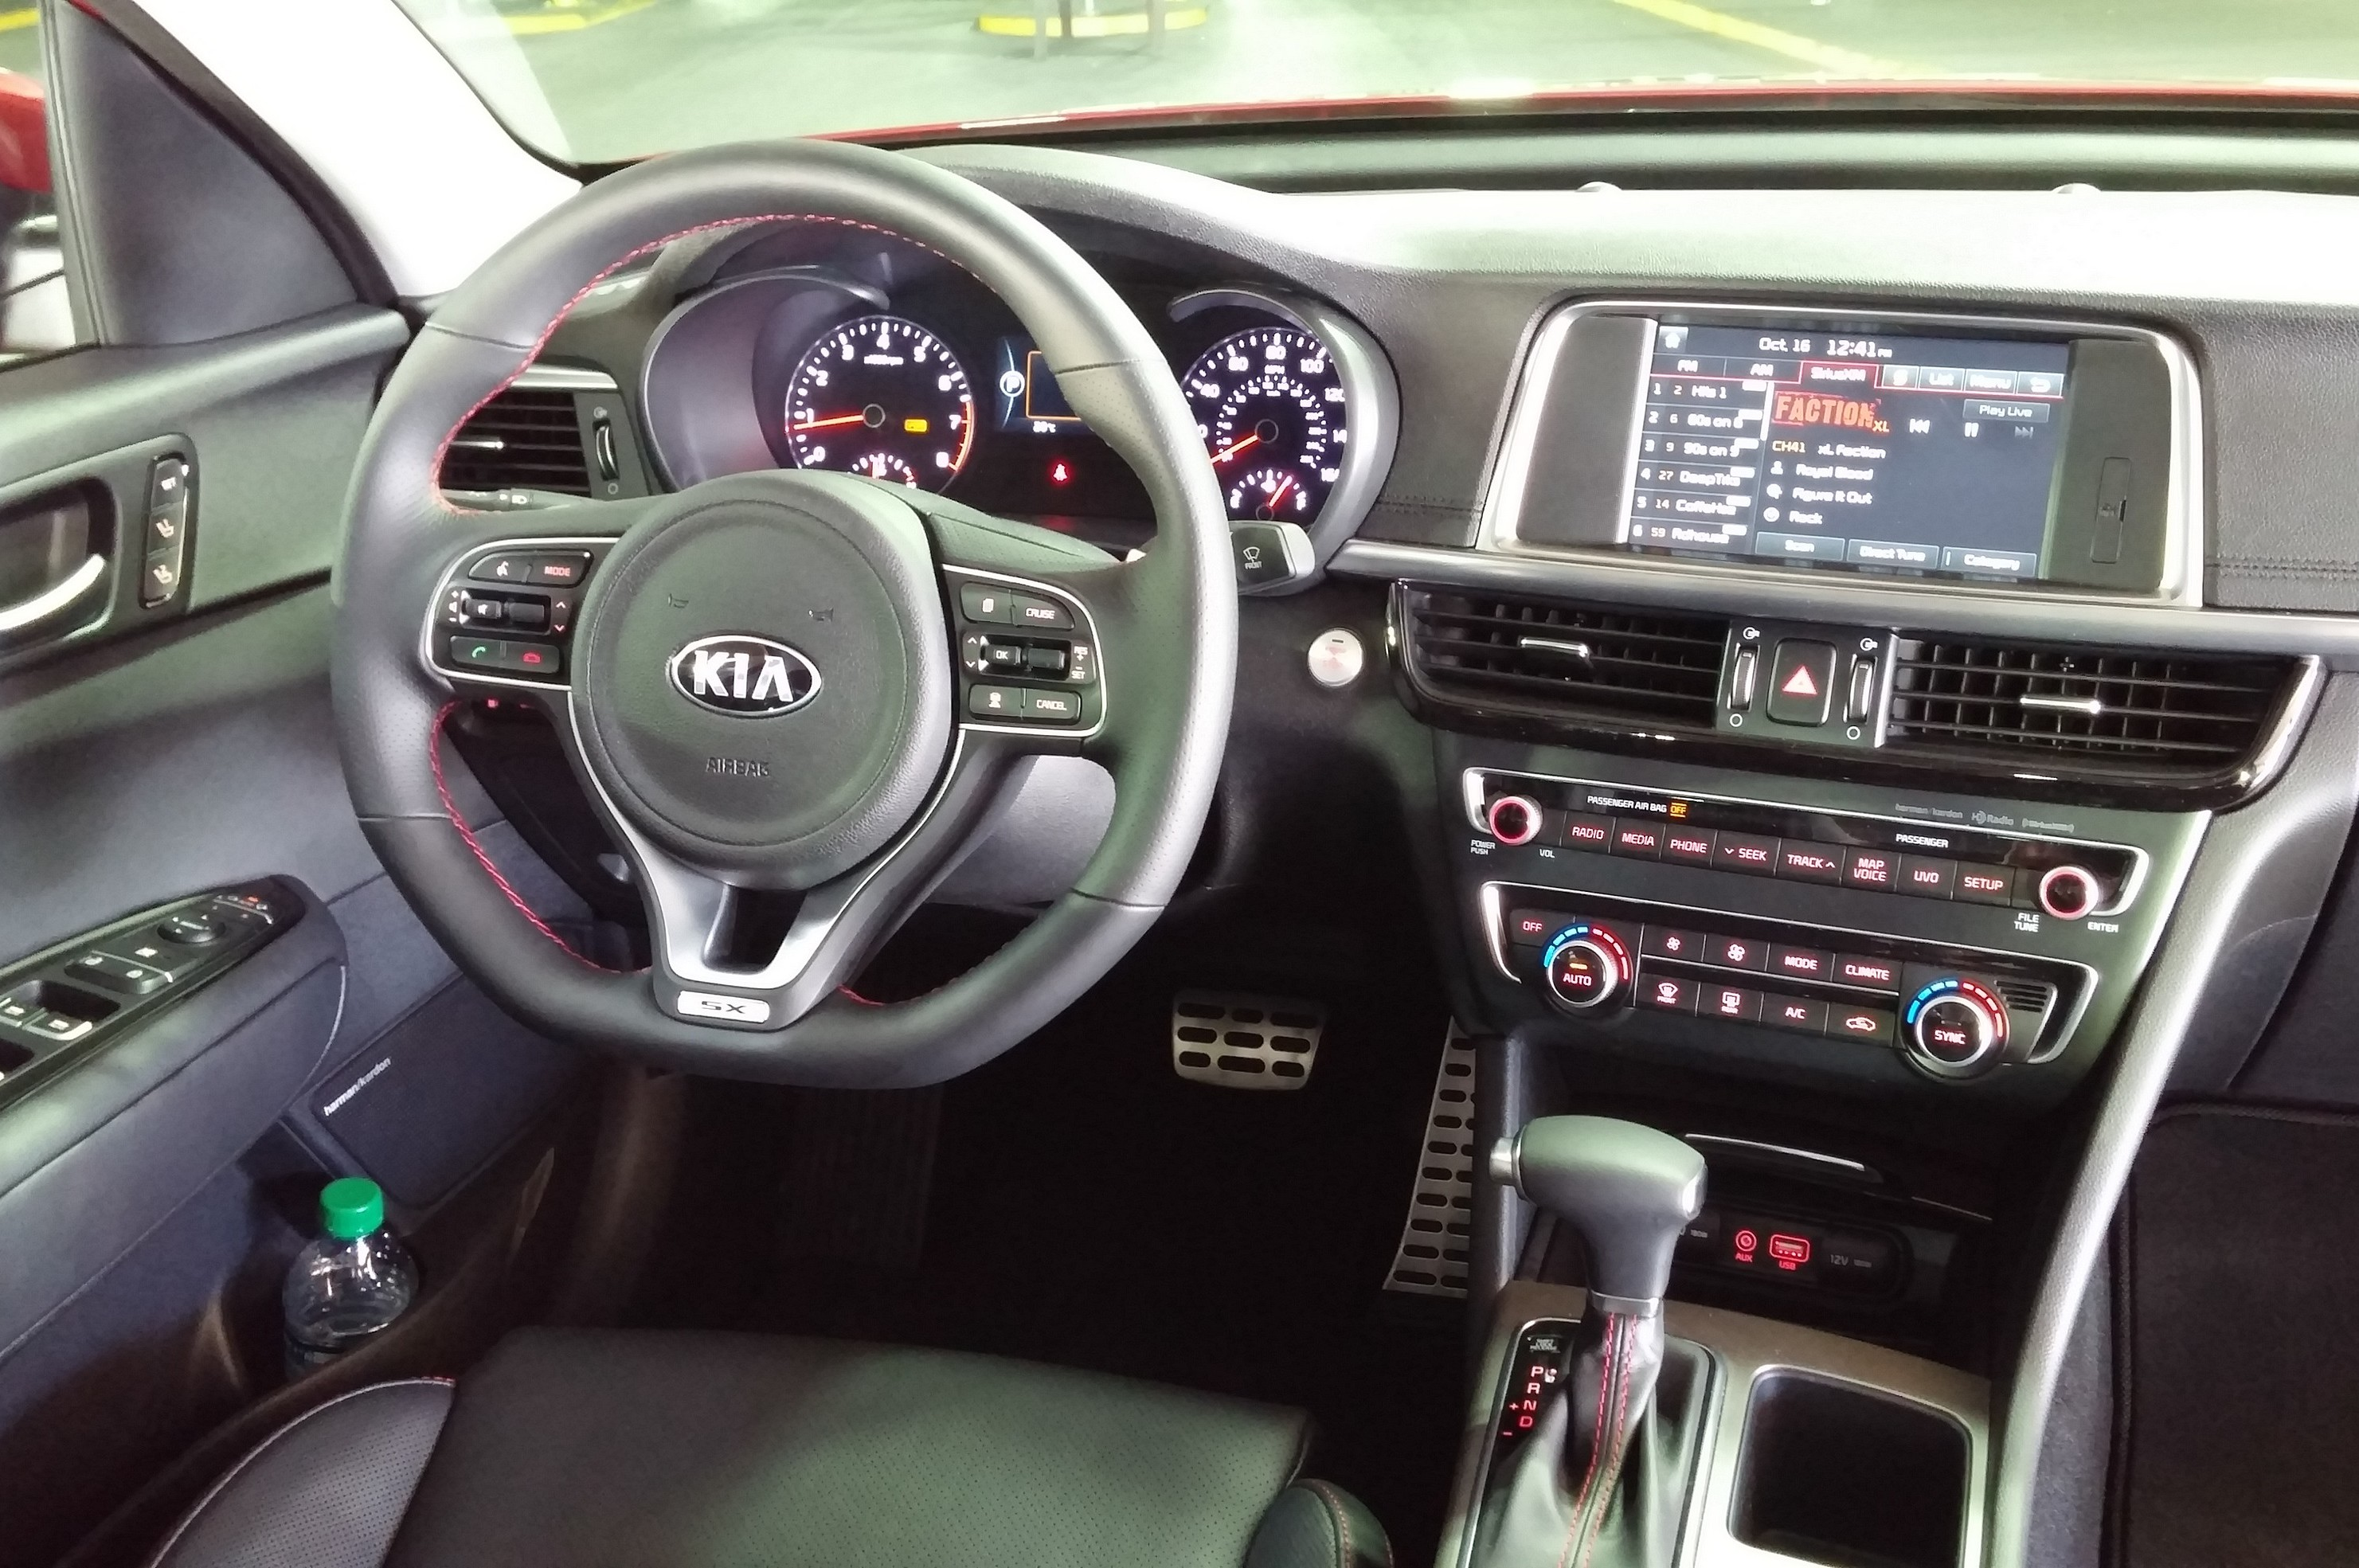 drive kia used pre in optima winchester front wheel owned turbo sx inventory car